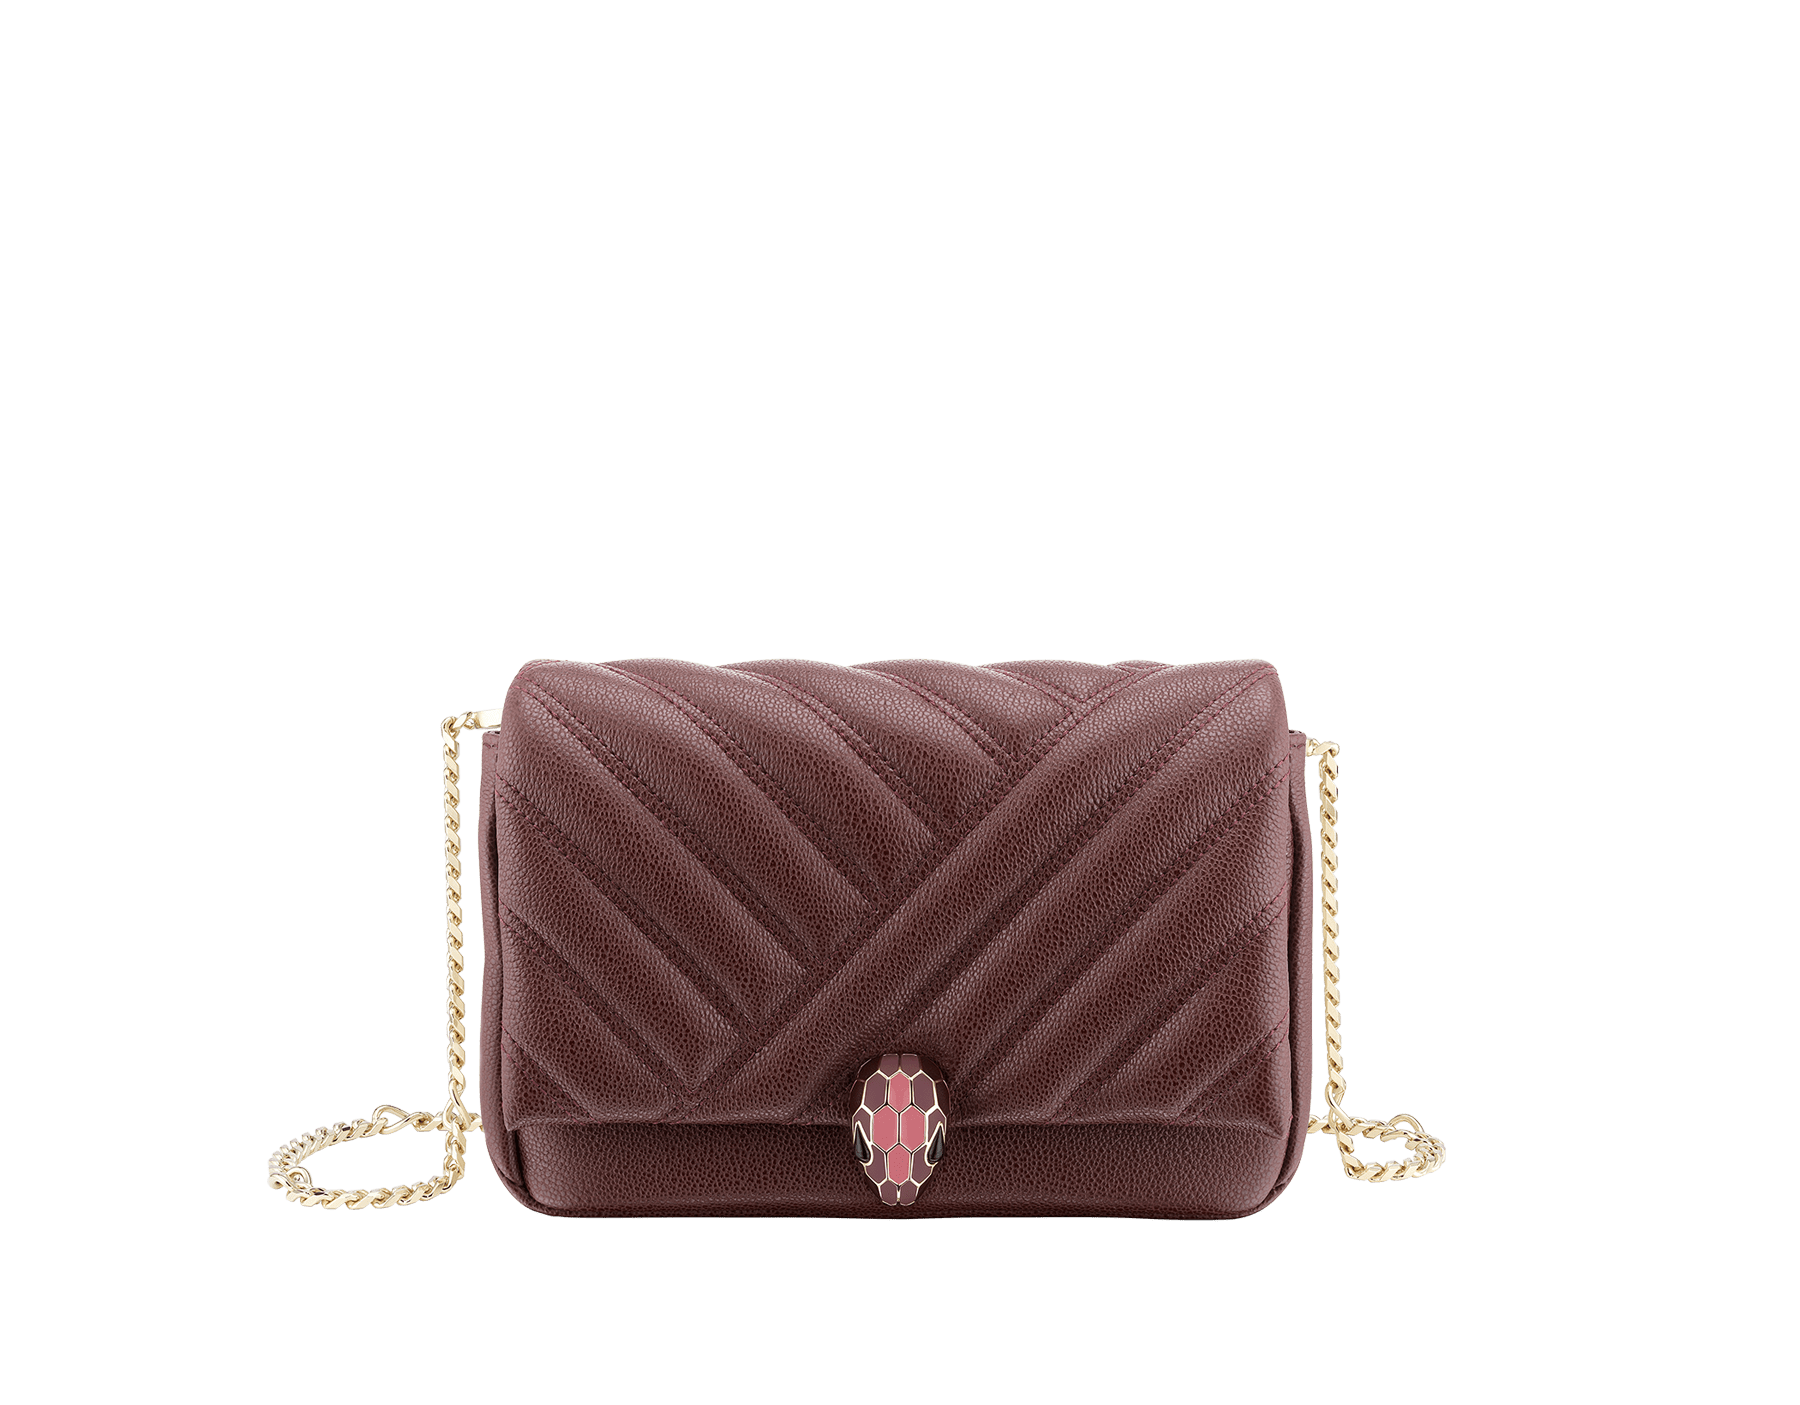 """Serpenti Cabochon"" crossbody mini bag in soft quilted Oxblood bordeaux grainy calf leather, with a graphic motif, and Berry Tourmaline fuchsia nappa leather internal lining. Tempting snakehead closure in light gold plated brass enriched with dégradé Oxblood bordeaux enamel from ultrabright to bright, with black onyx eyes. 290648 image 1"